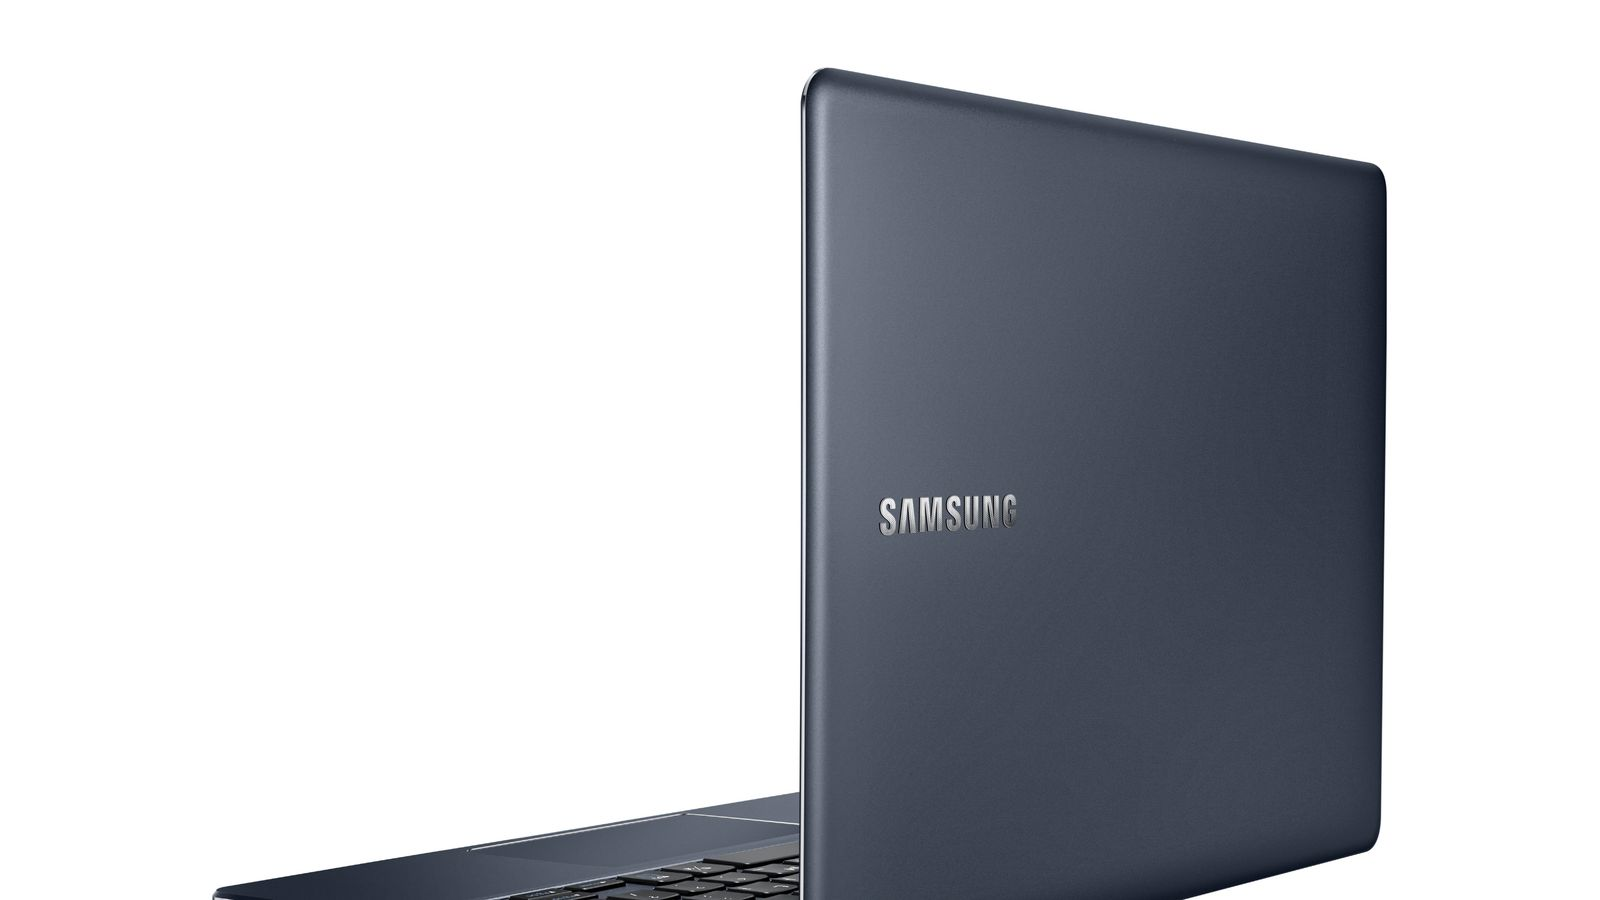 samsung angers microsoft by disabling windows update on some of its computers the verge. Black Bedroom Furniture Sets. Home Design Ideas